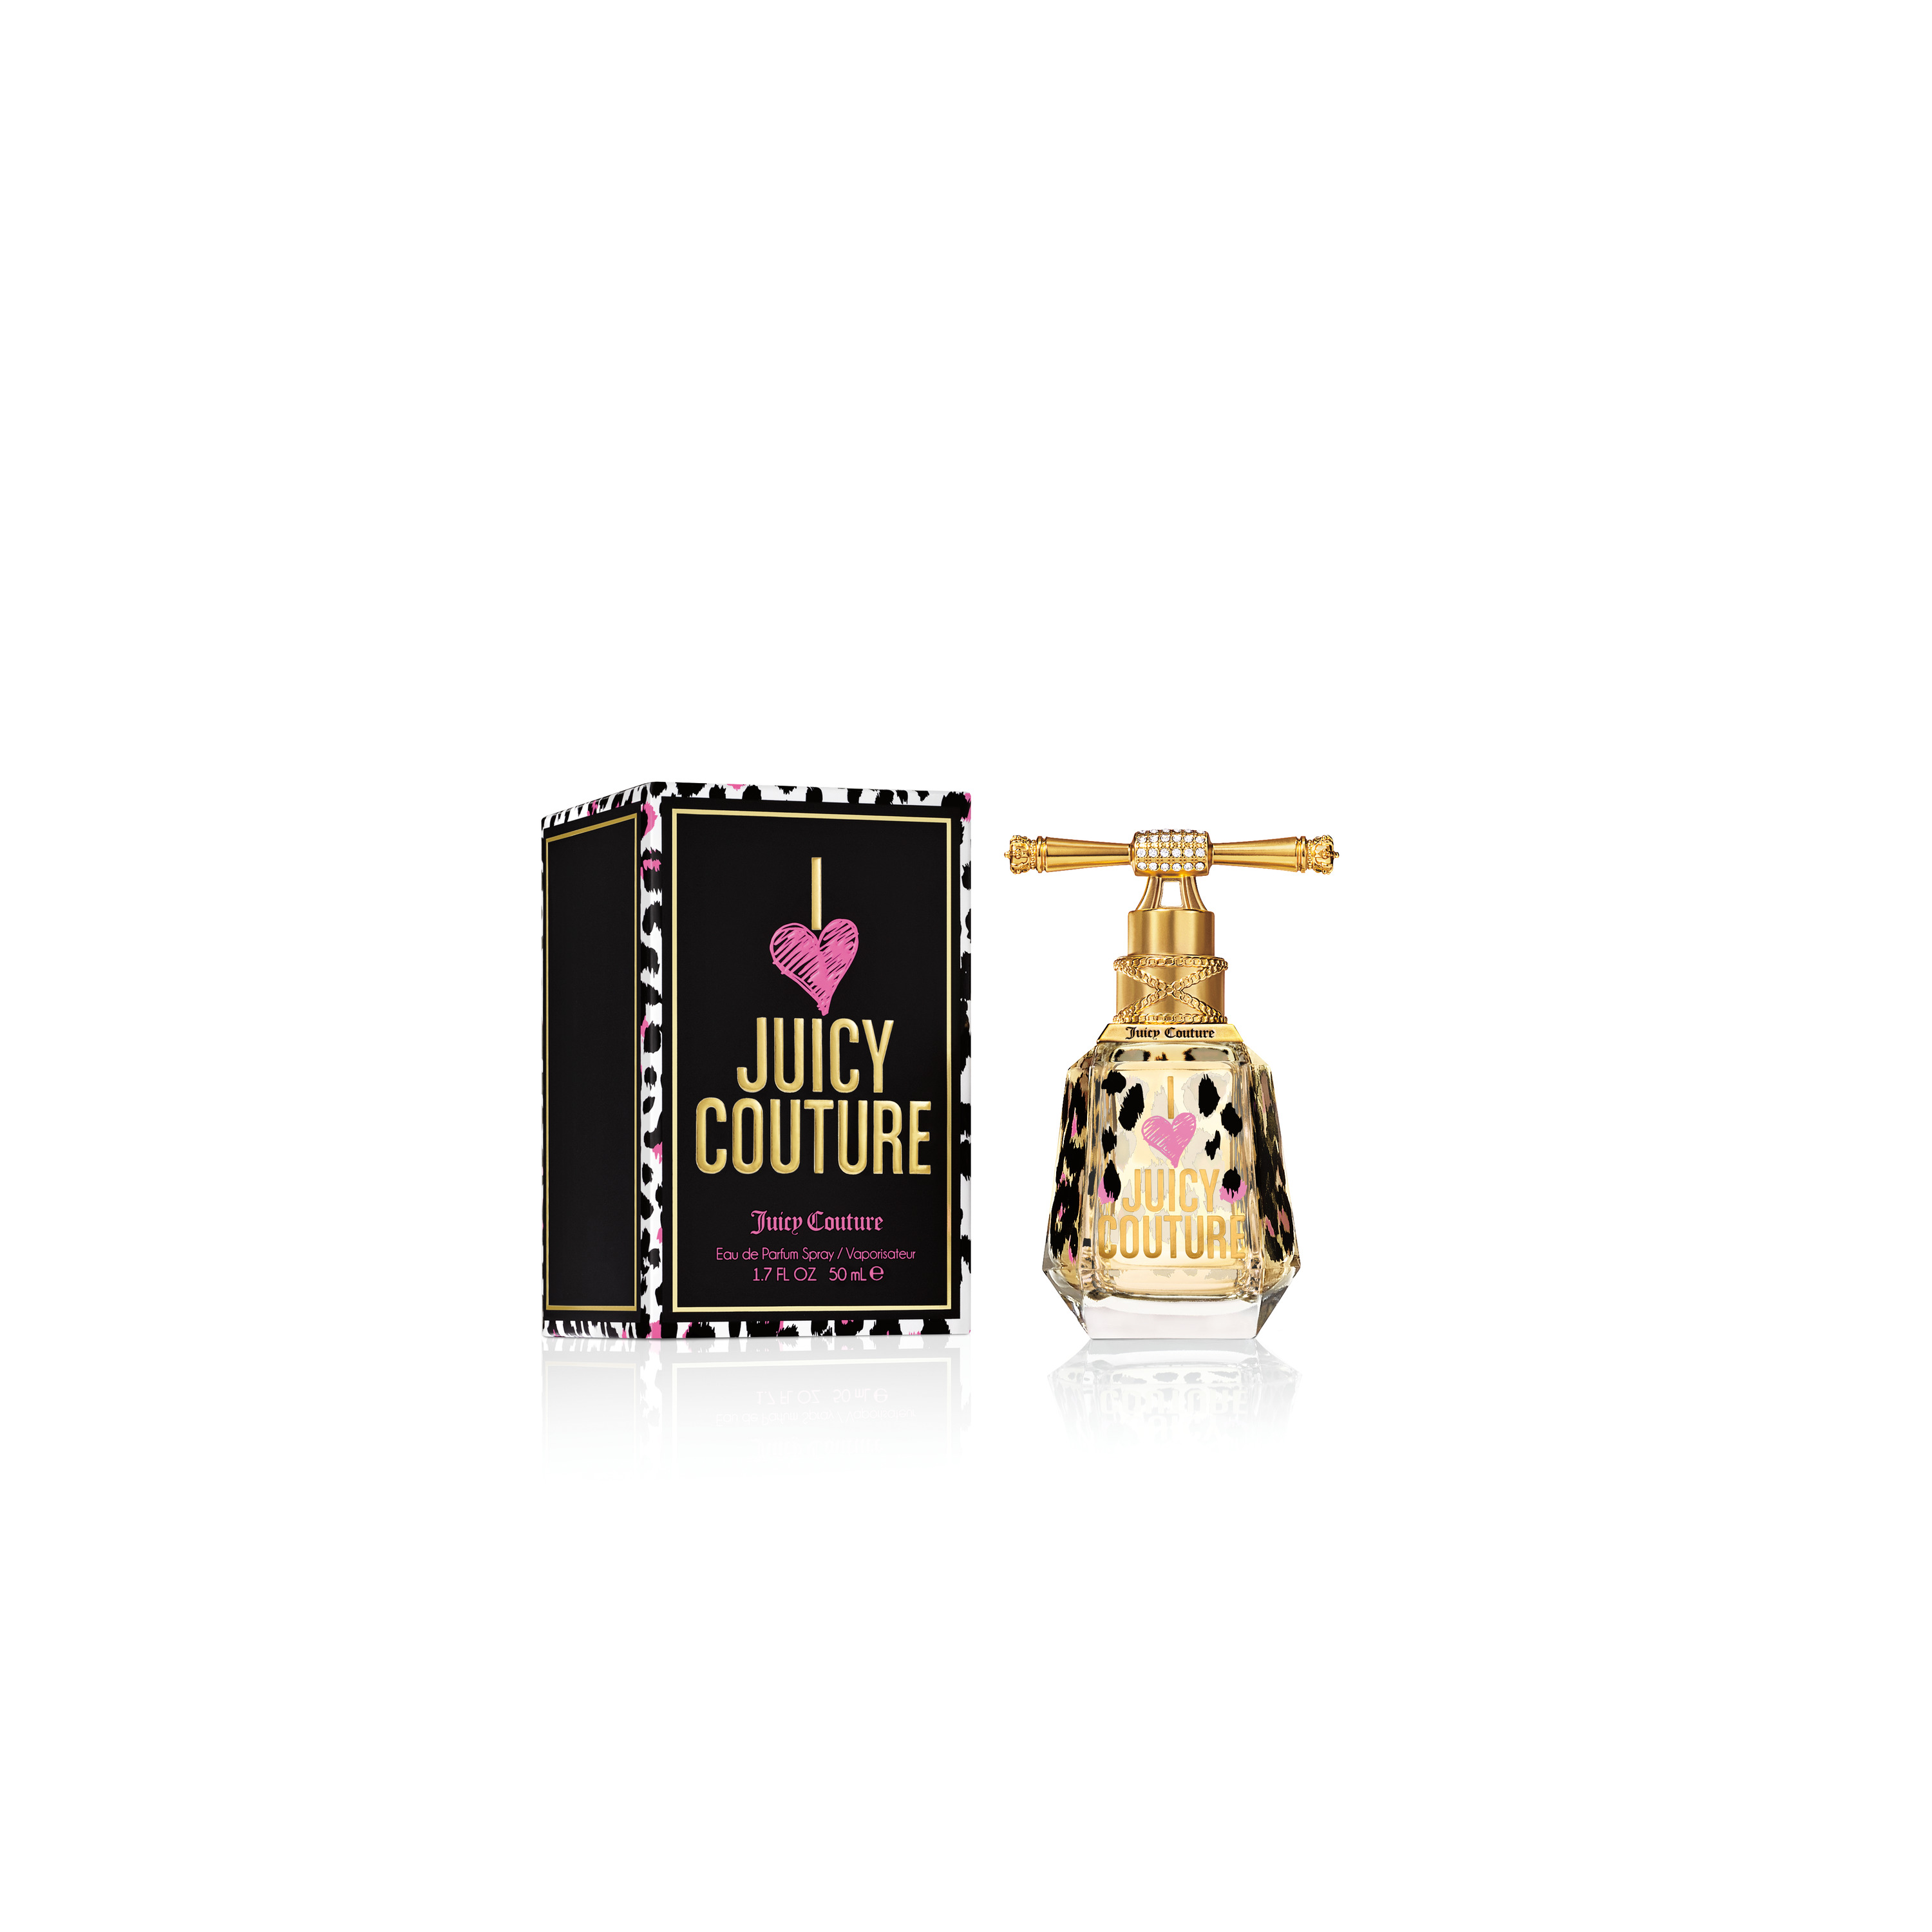 Juicy Couture I Love Juicy Couture Парфюмерная вода 50мл